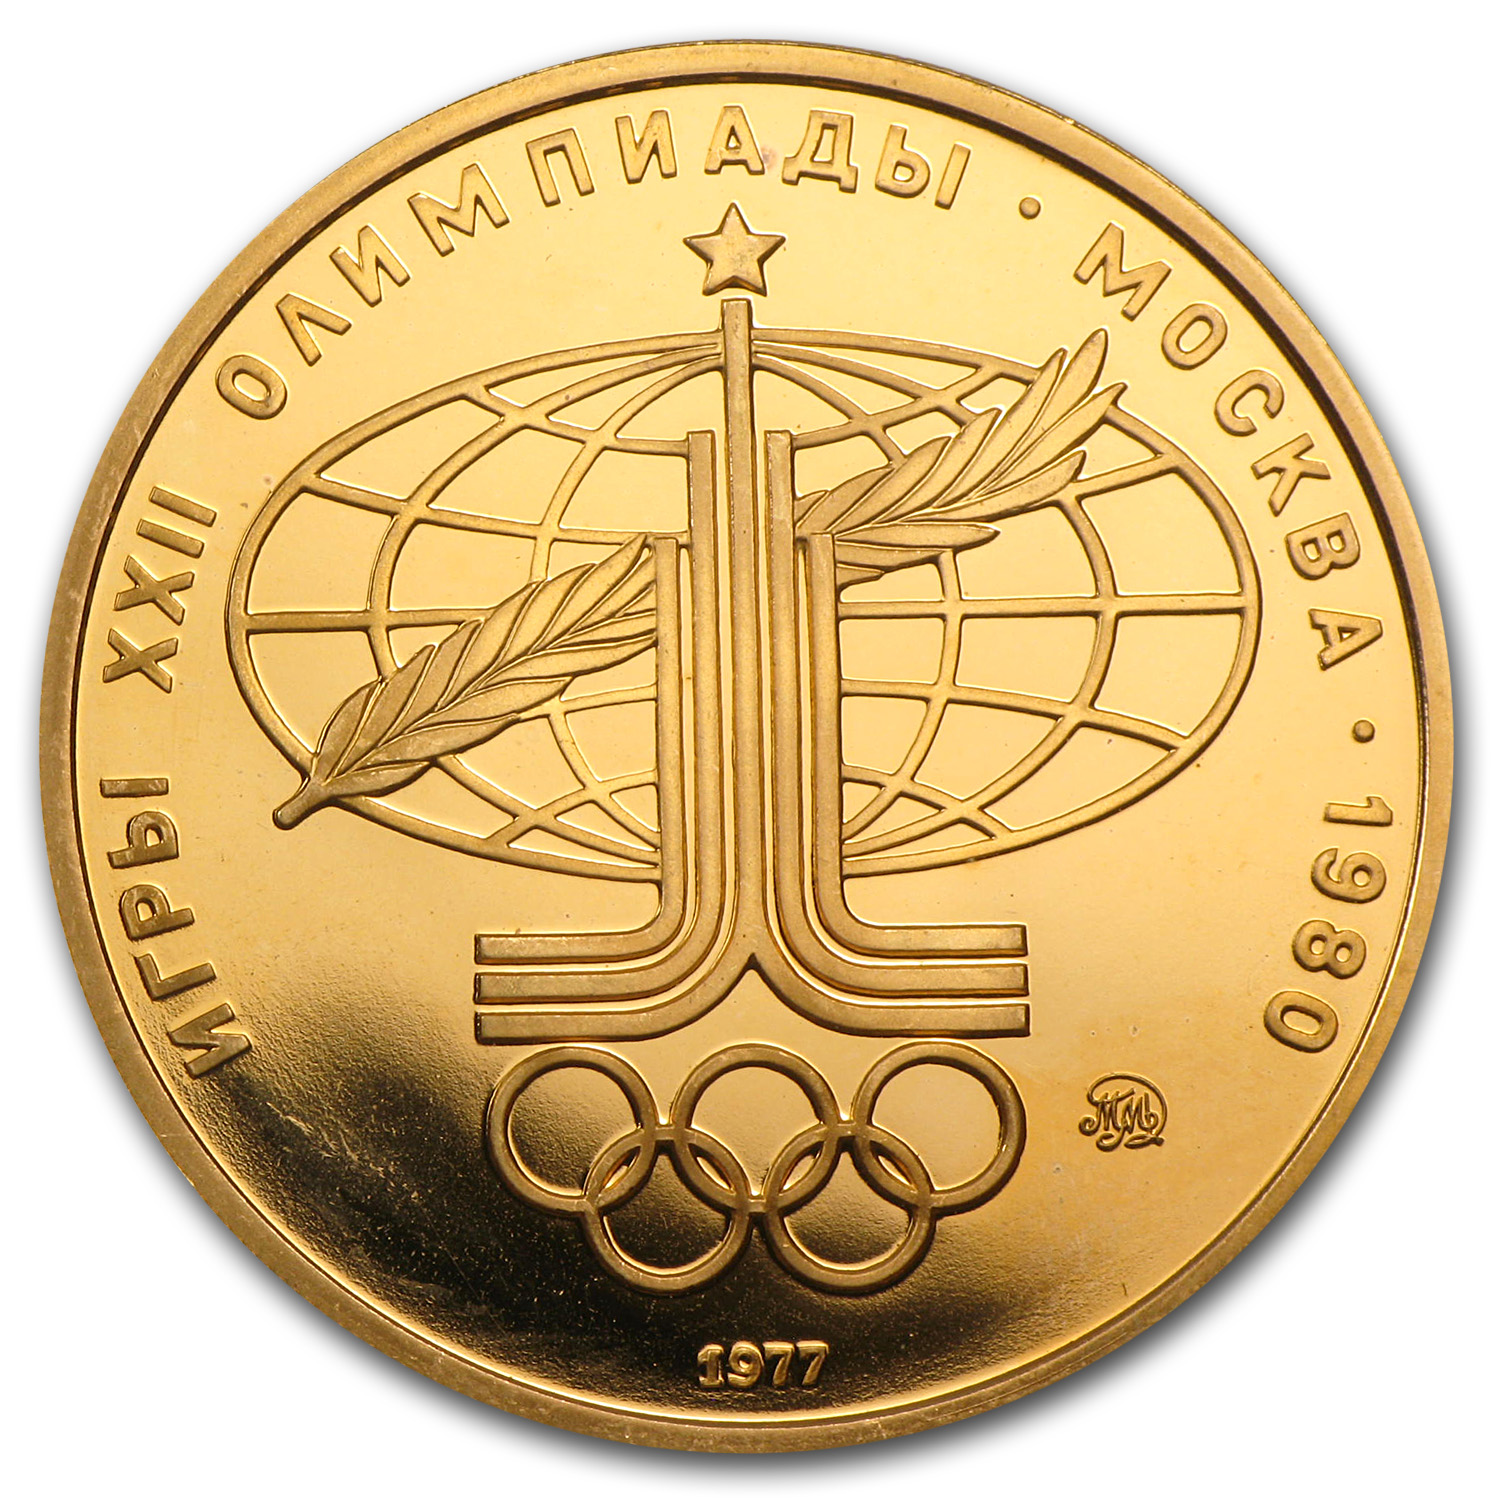 Russia (1977) 1980 Olympic 100 Rouble Gold Proof/Unc